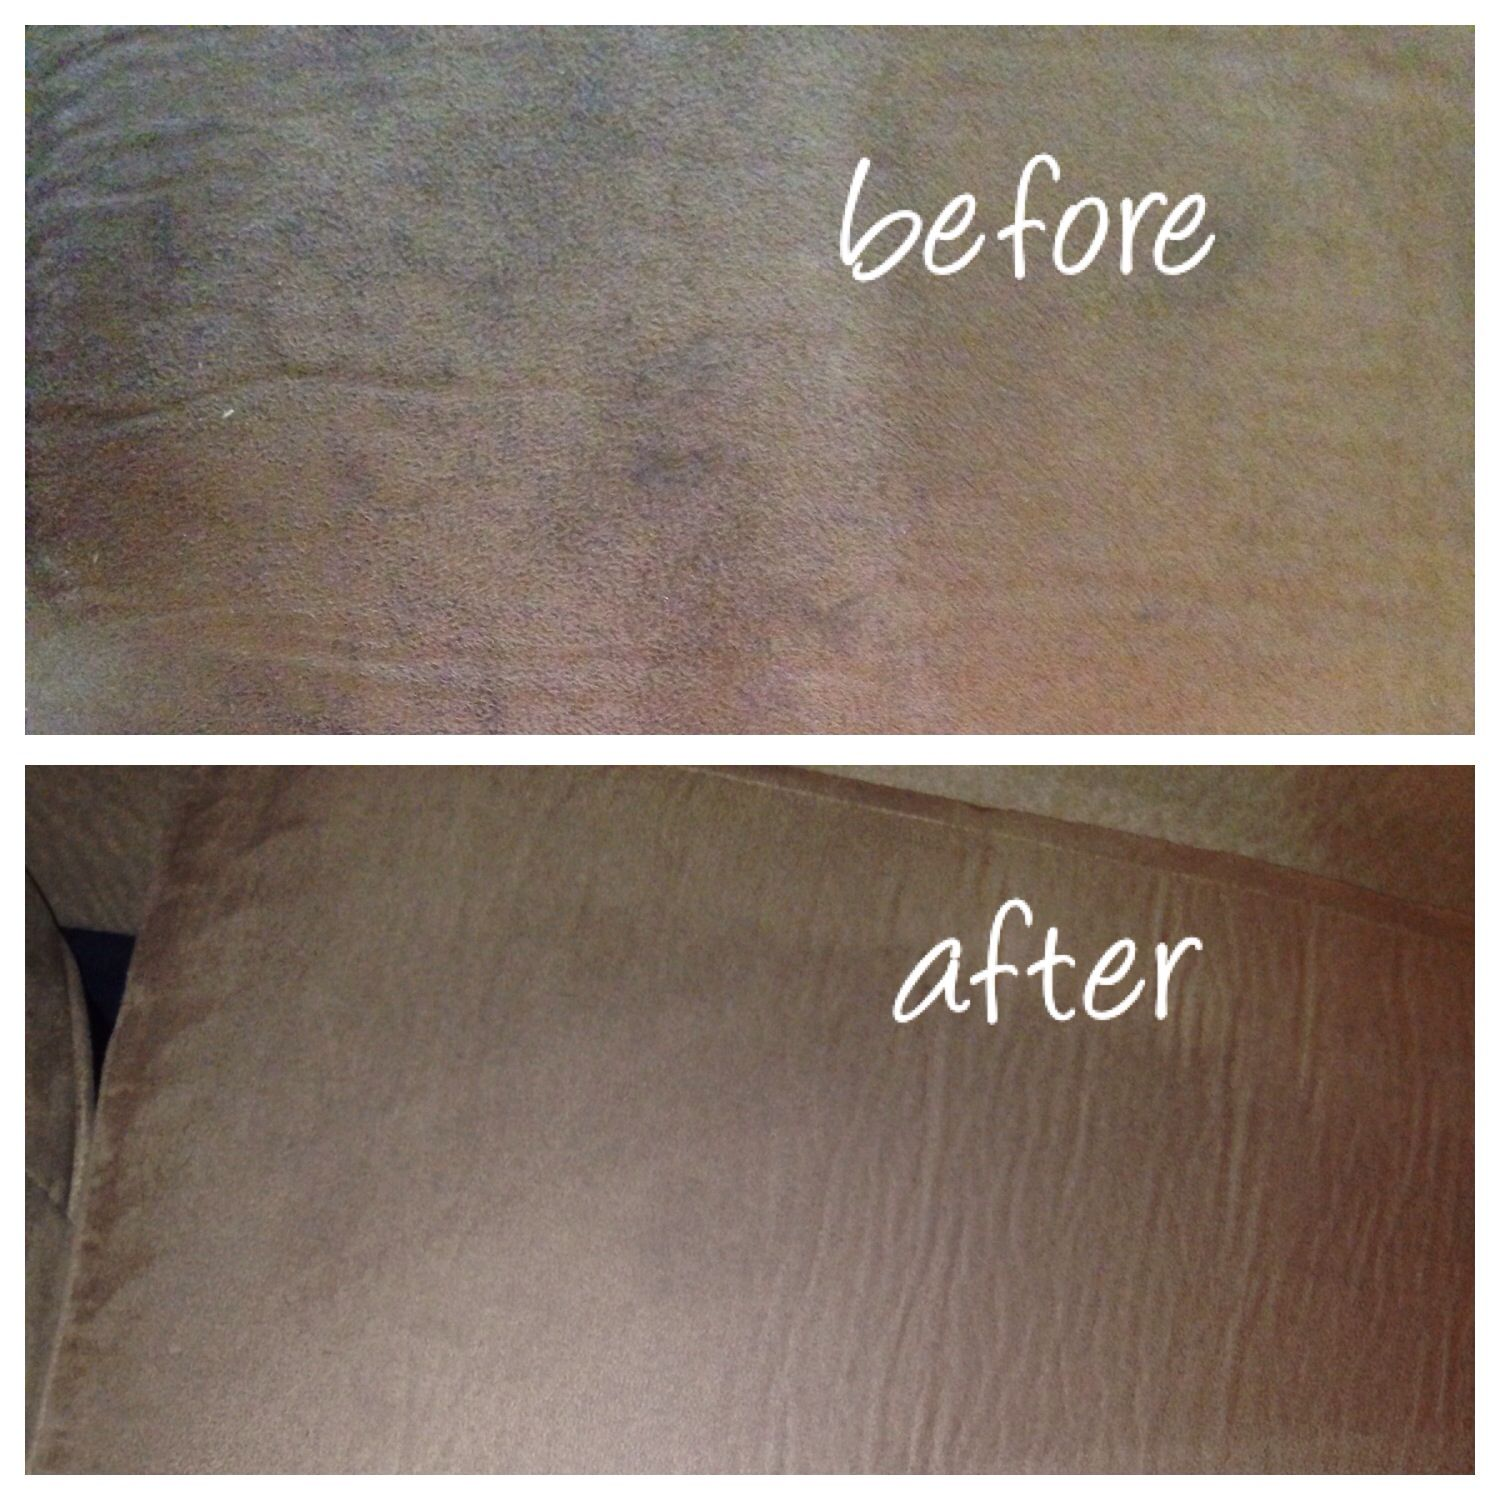 Enjoyable I Just Cleaned My Microfiber Couch With Windex And A Scrub Machost Co Dining Chair Design Ideas Machostcouk